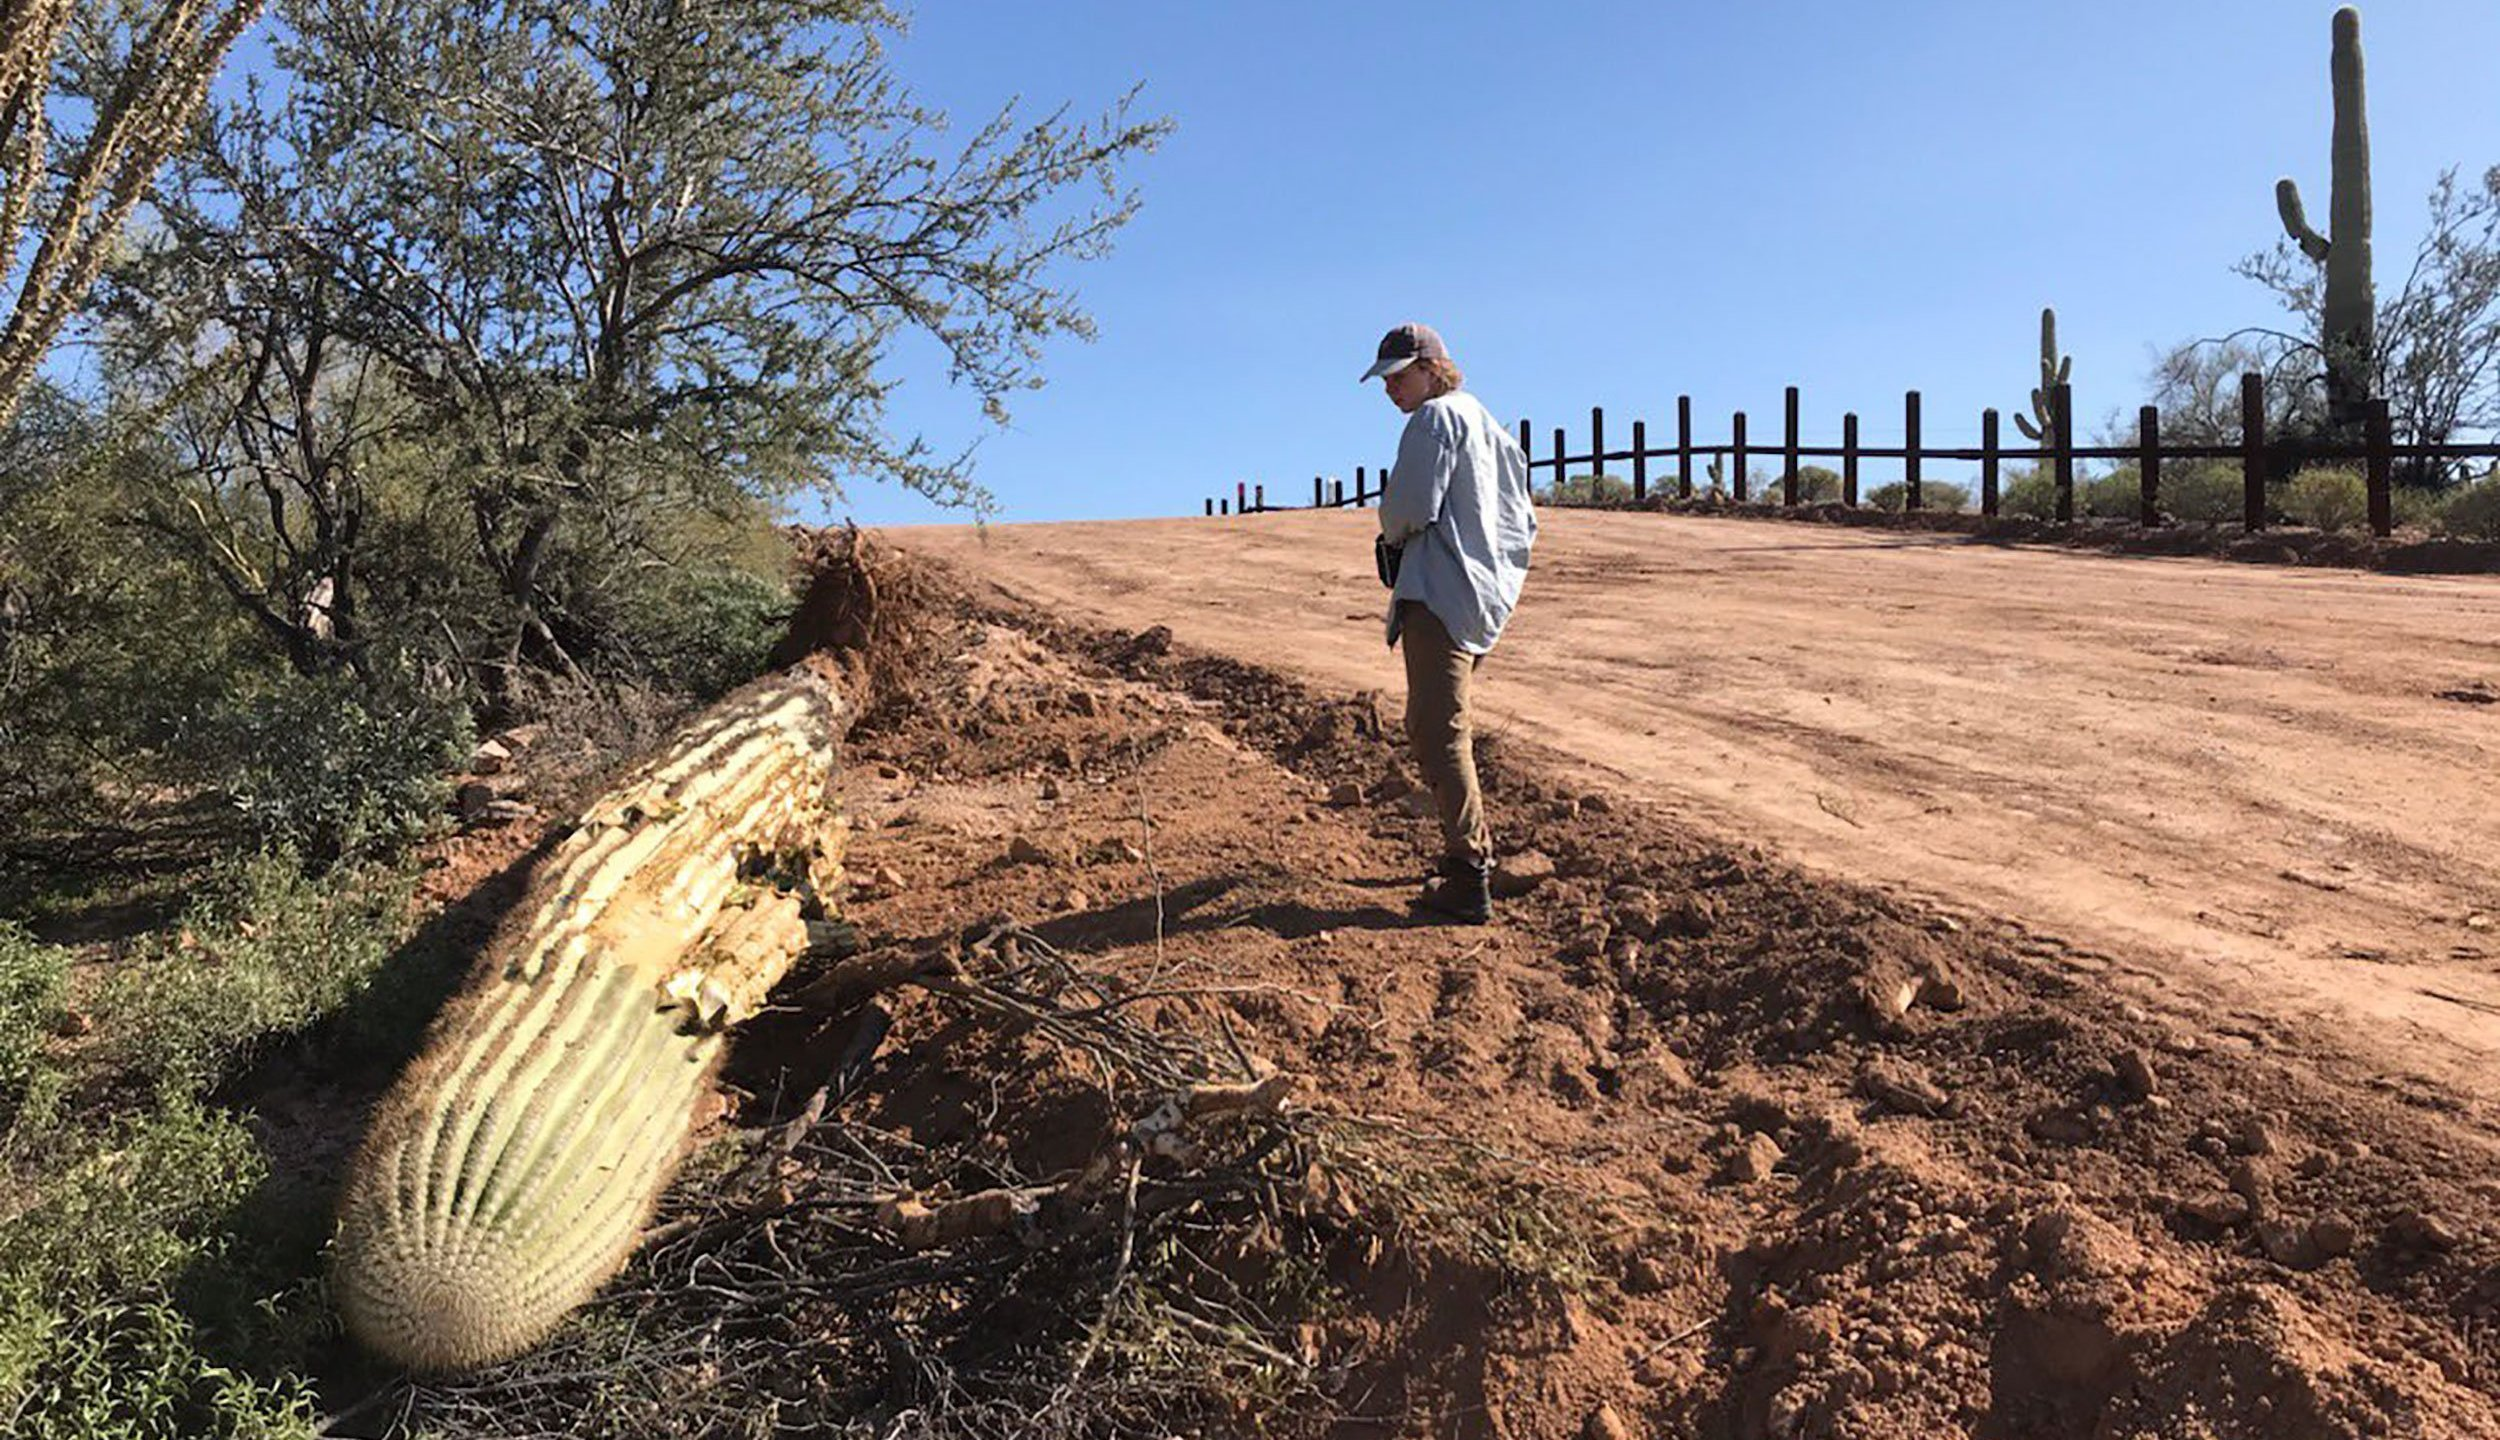 A dead saguaro is seen amid border wall construction at Organ Pipe Cactus National Monument in this undated photo. (Credit: Laiken Jordahl / Center for Biological Diversity)